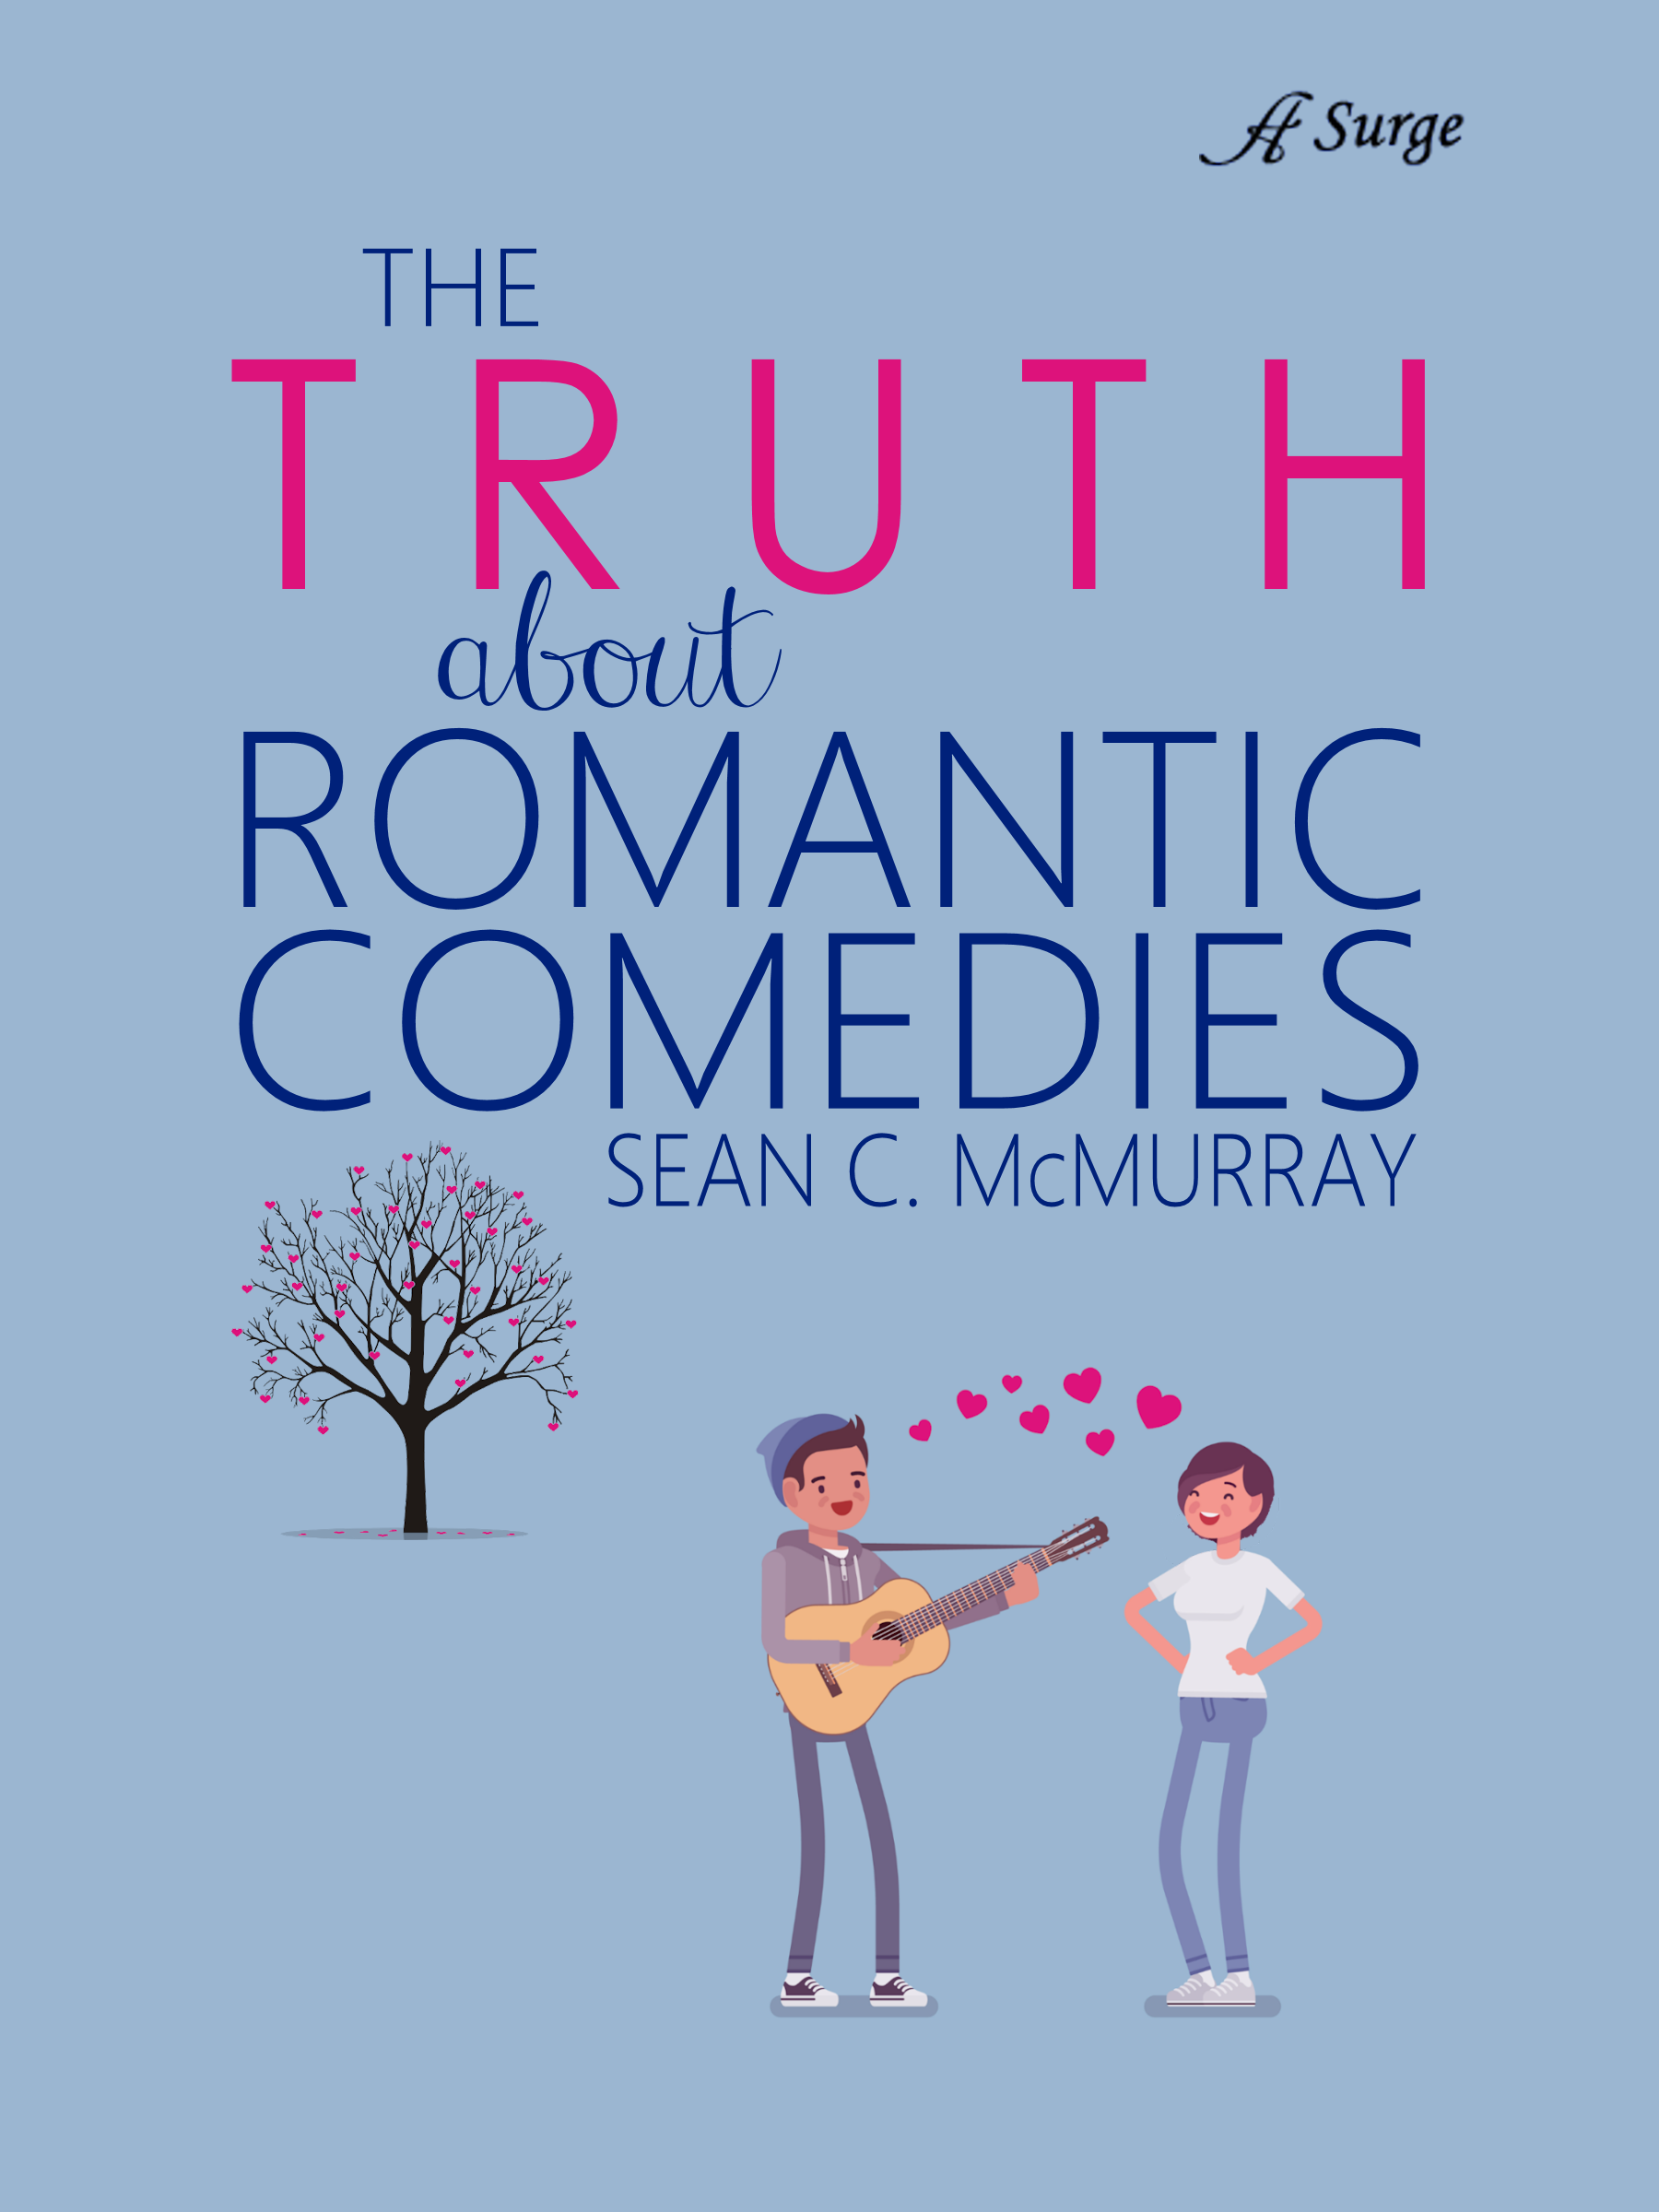 the truth about romantic comedies 1800x2400.png